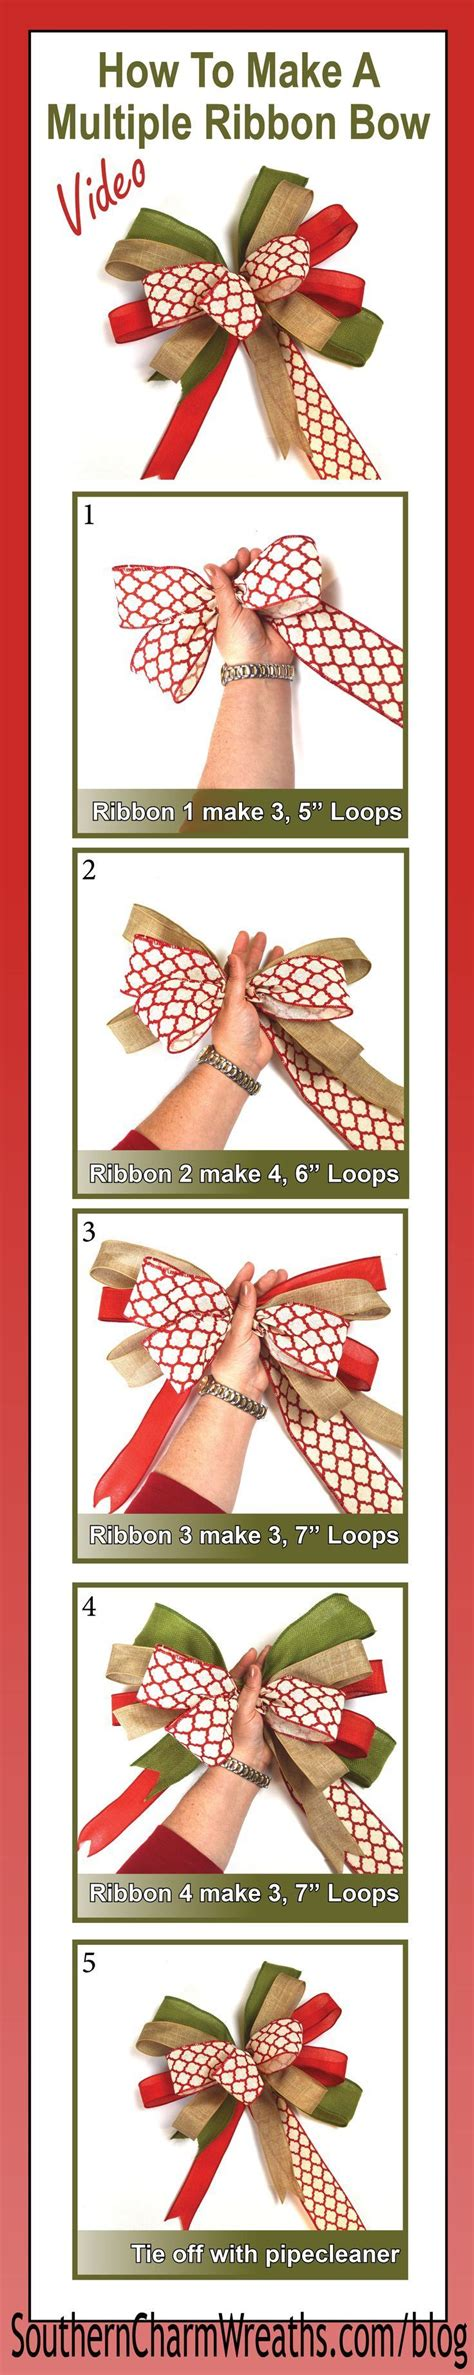 how to make a bow with multiple ribbons make a bow bows